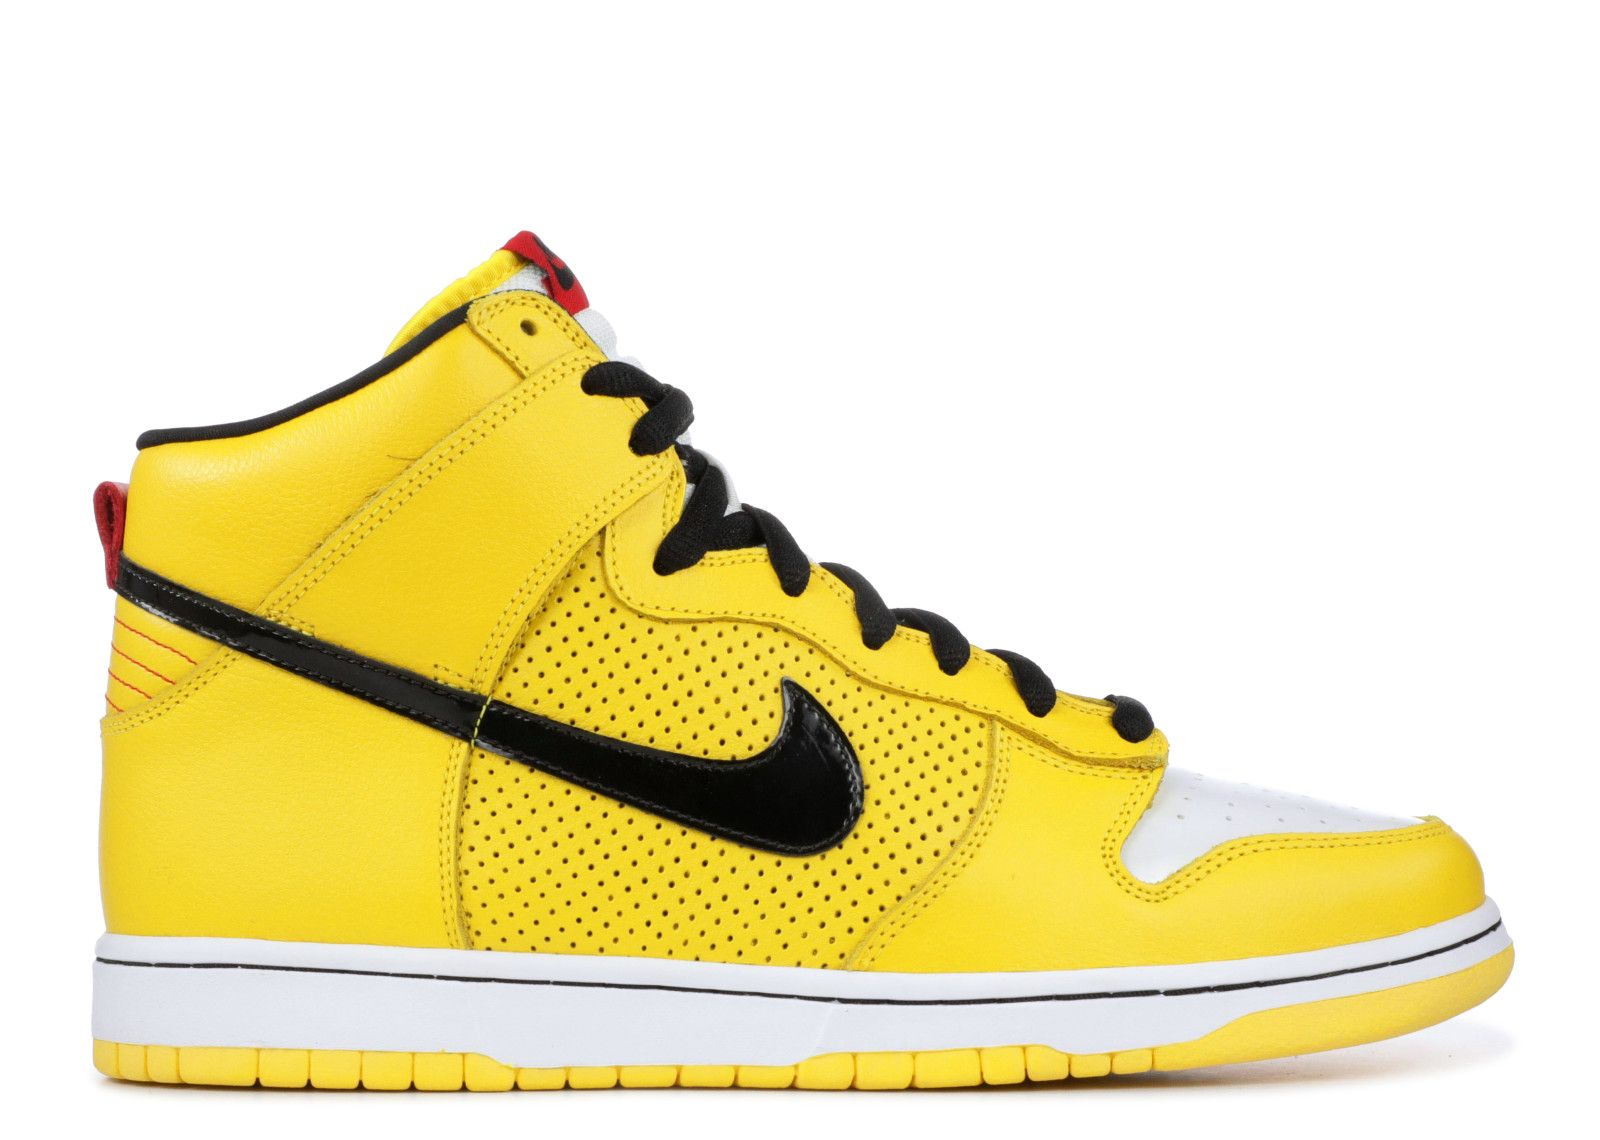 Nike Dunk High giallo